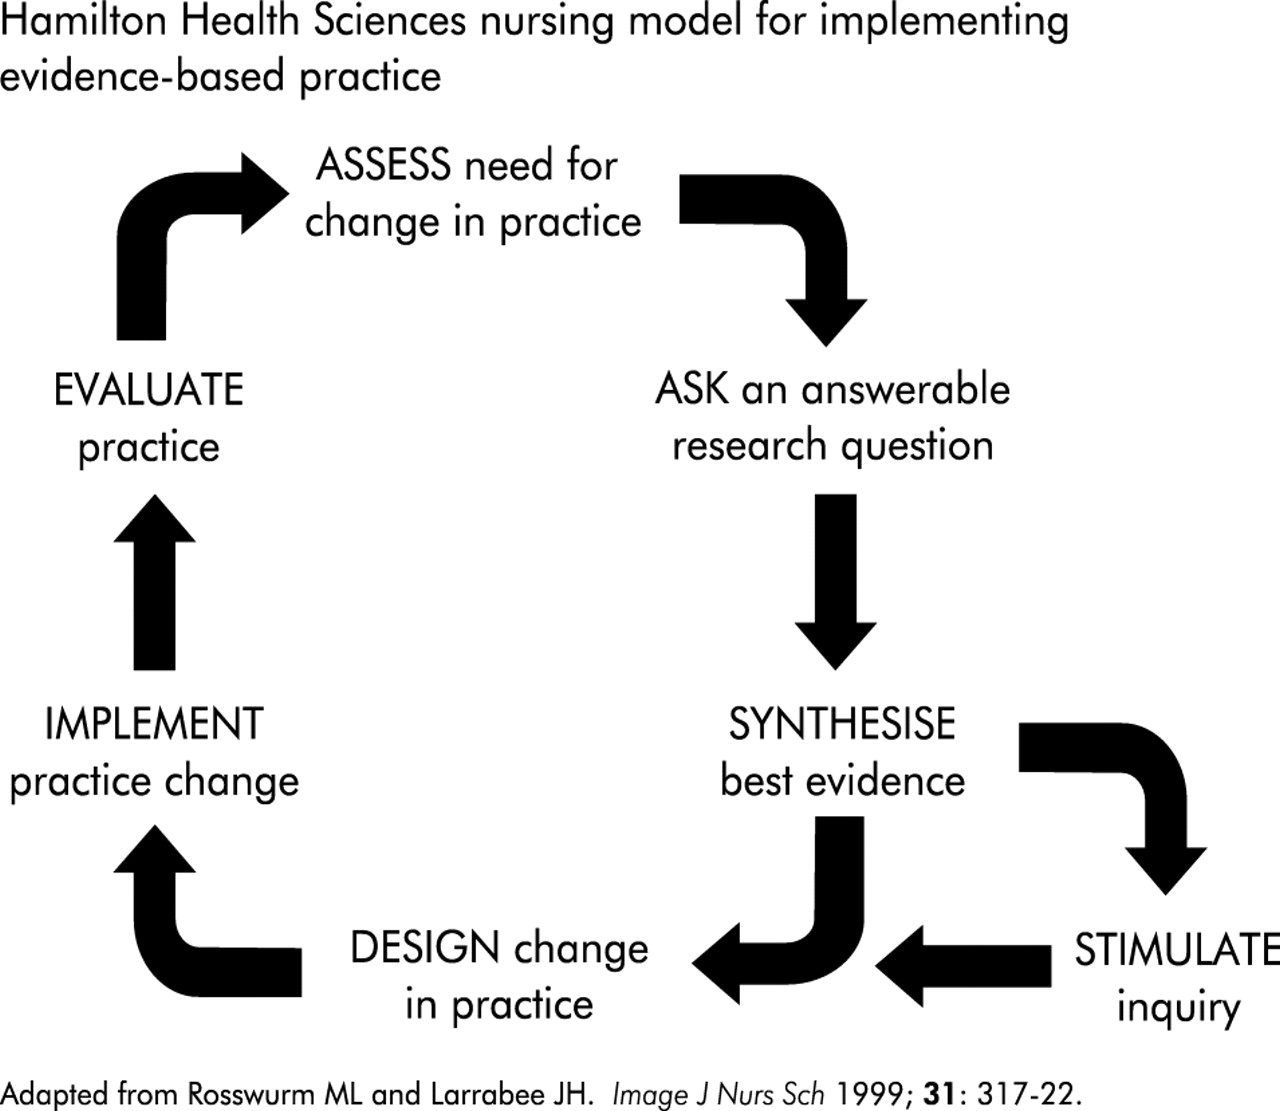 Building a foundation for evidence-based practice